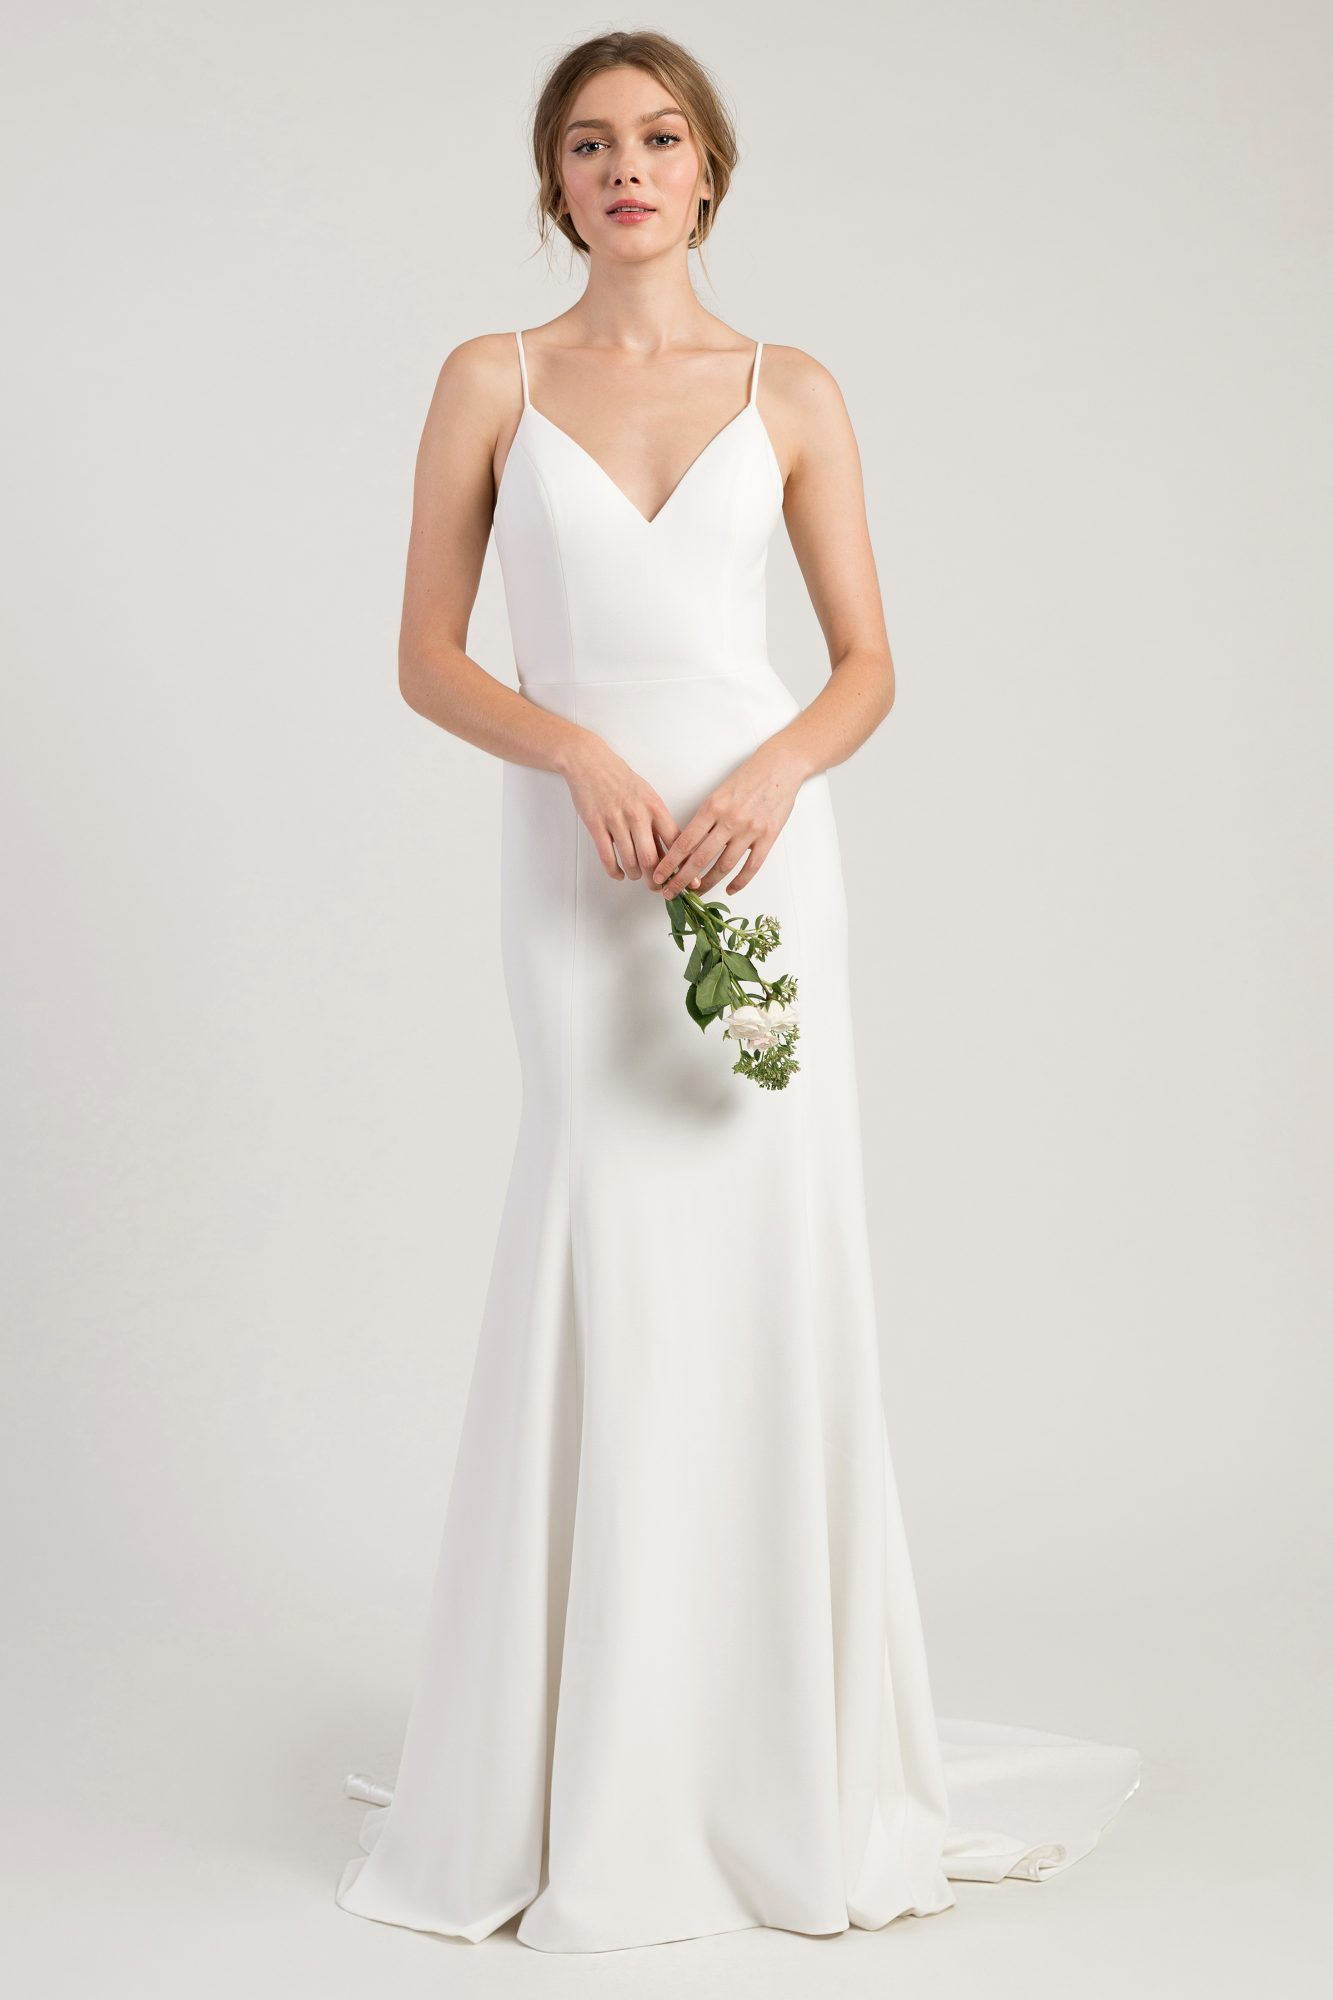 jenny by jenny yoo wedding dress sleeveless spaghetti straps sweetheart trumpet